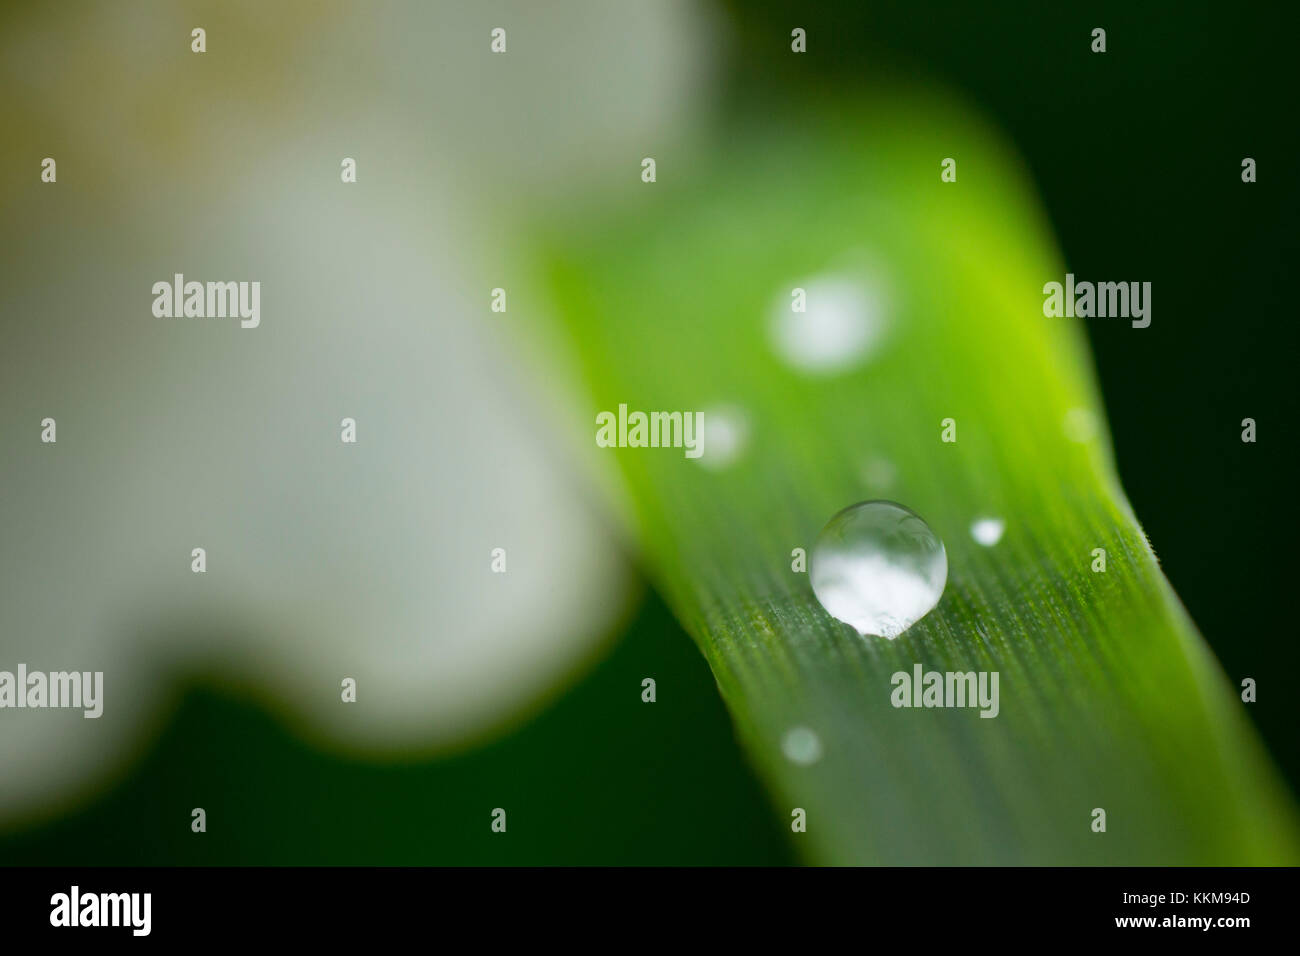 Blade of grass with dewdrop, close-up - Stock Image